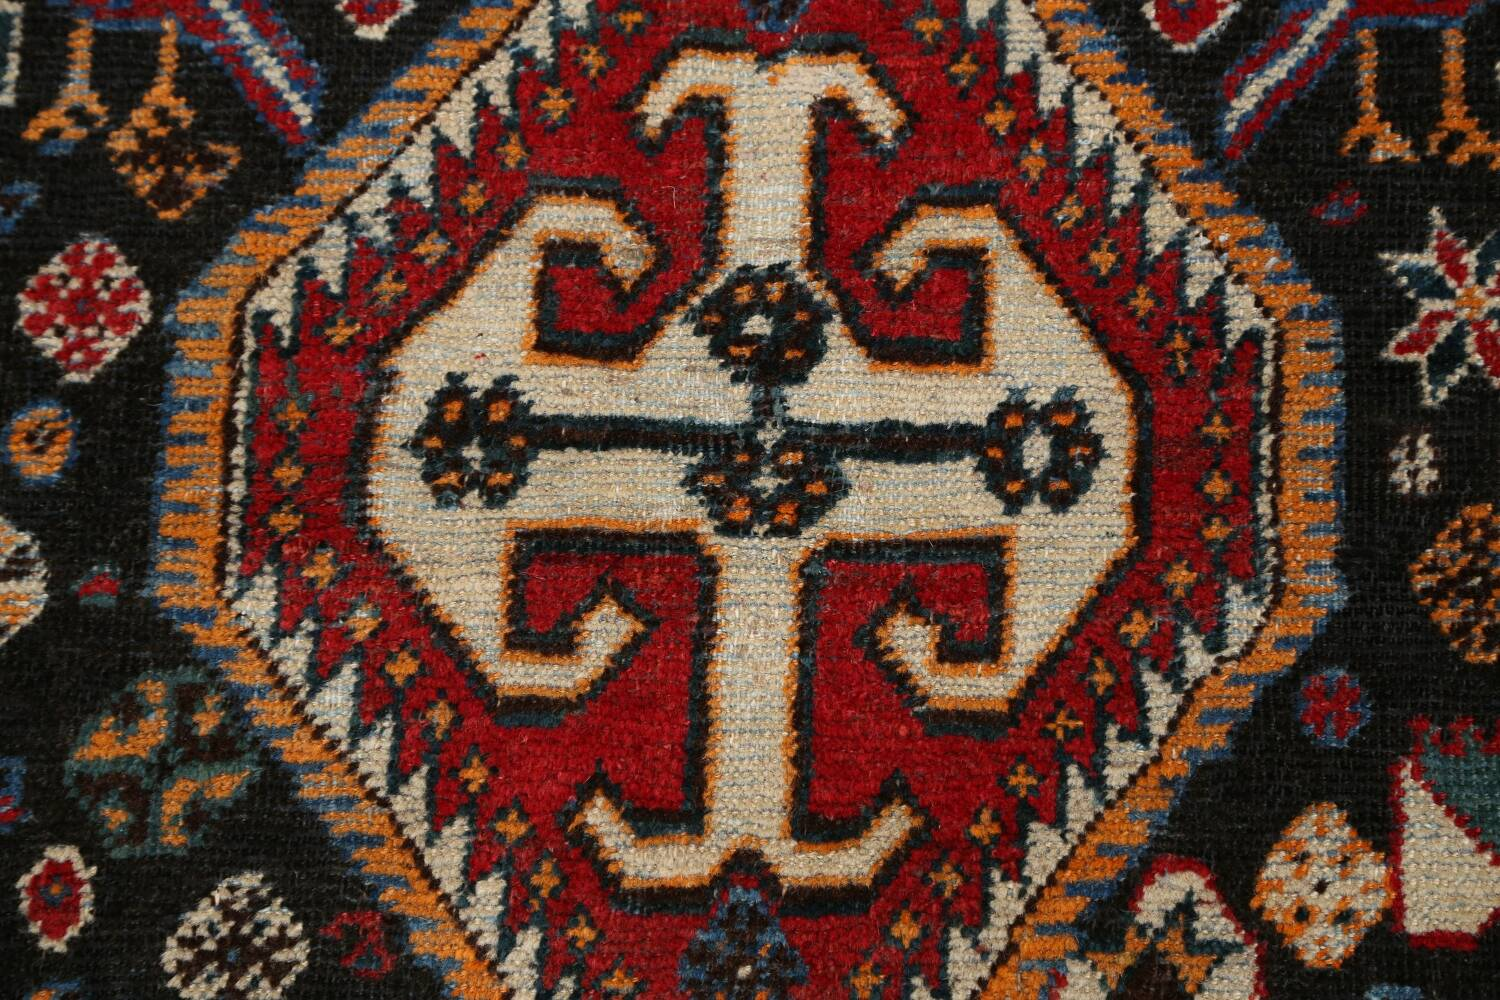 Antique Pre-1900 Tribal Bakhtiari Persian Area Rug 4x5 image 10